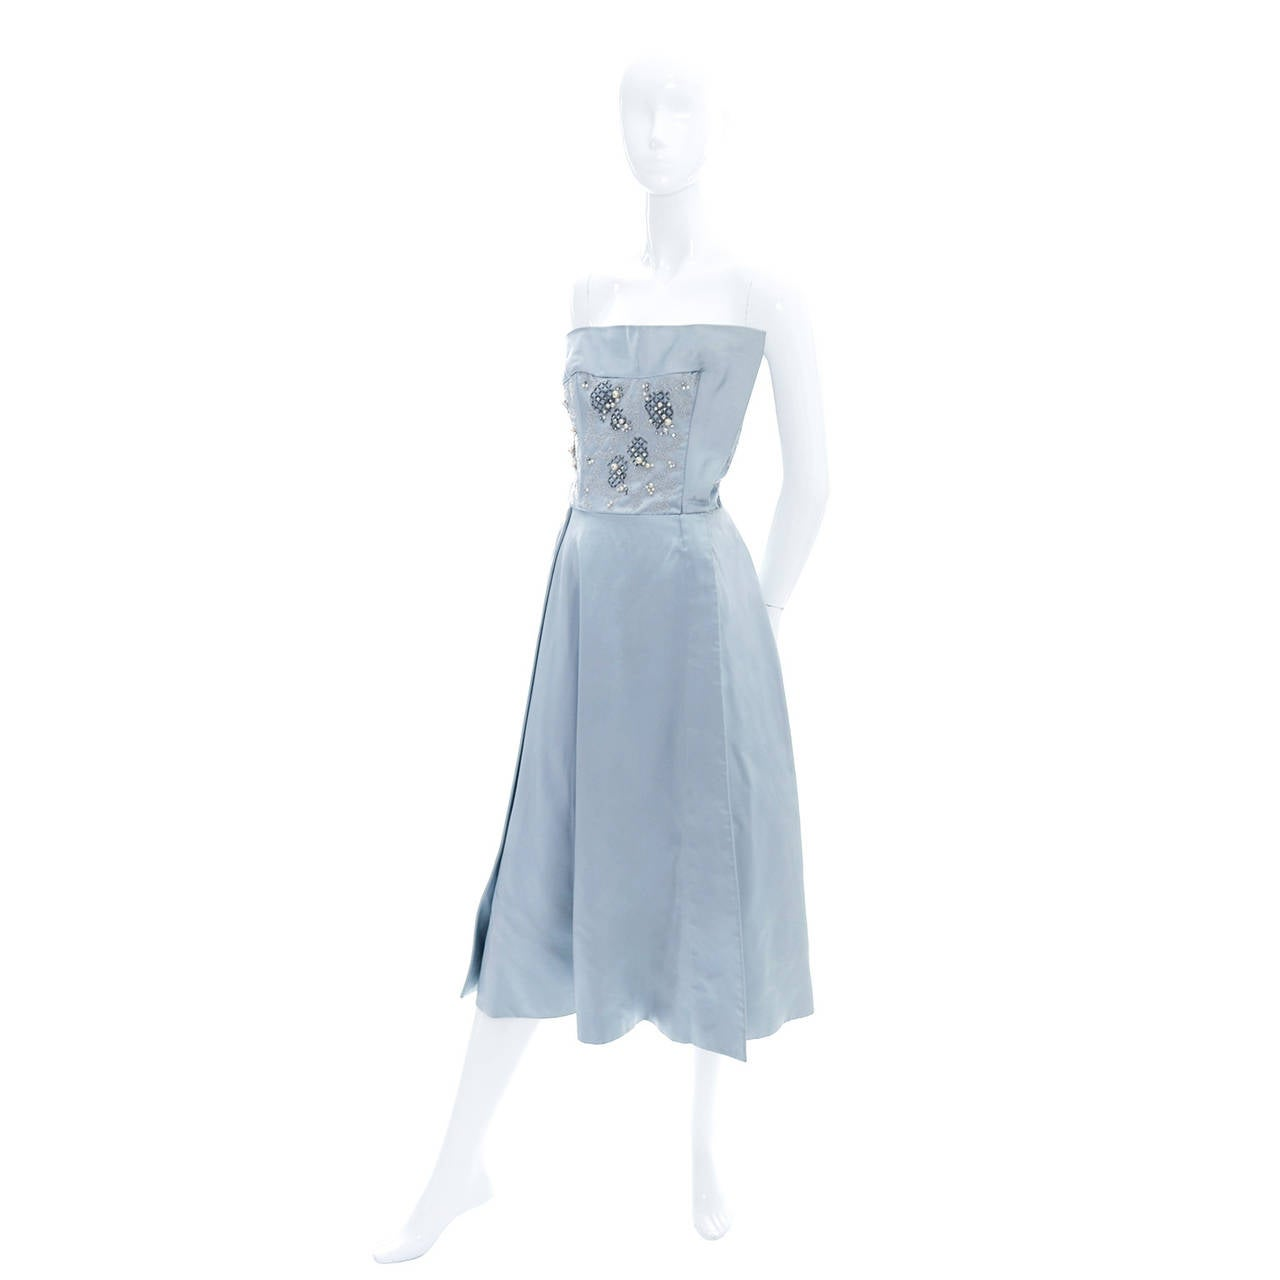 This is a gorgeous vintage blue satin cocktail dress from Harvey Berin, designed by Karen Stark.  This dress has an incredible, heavily beaded bodice that includes seed pearls, beads, rhinestones, and larger pearls. The bodice is so unique with one